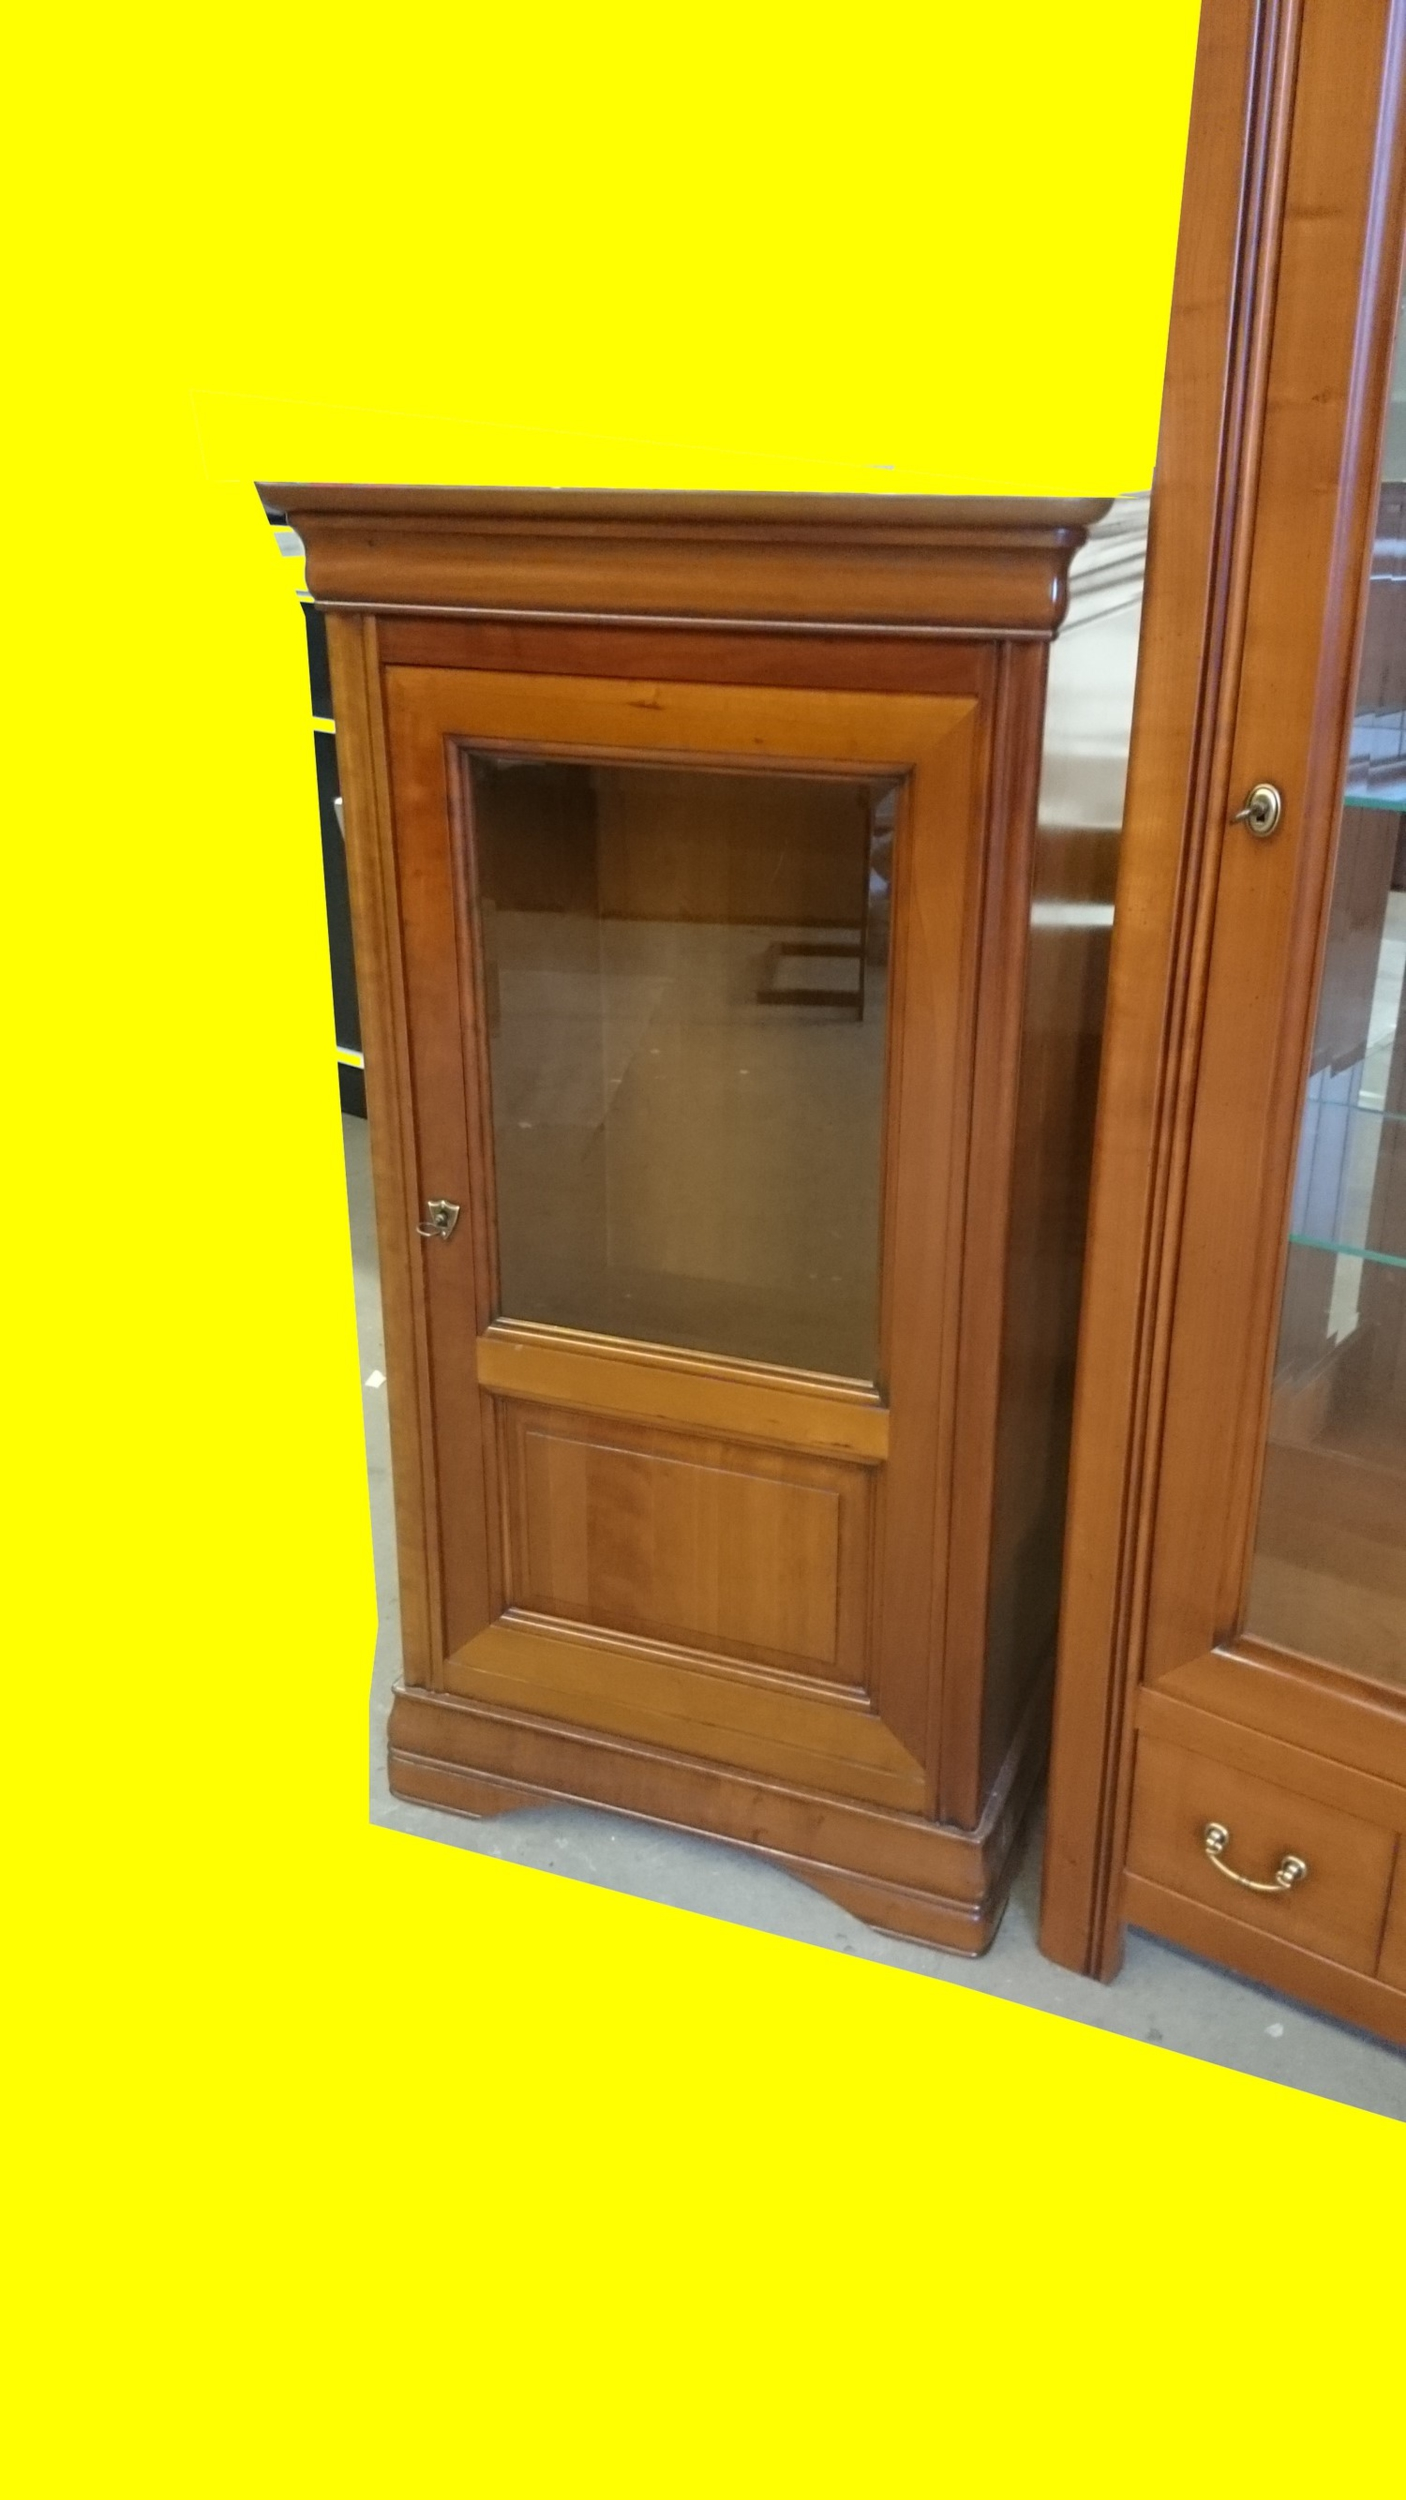 Vitrine Collection Ou Meuble Hifi Ernest Menard Maison Mobilier  # Meuble Tv Caisse Vin